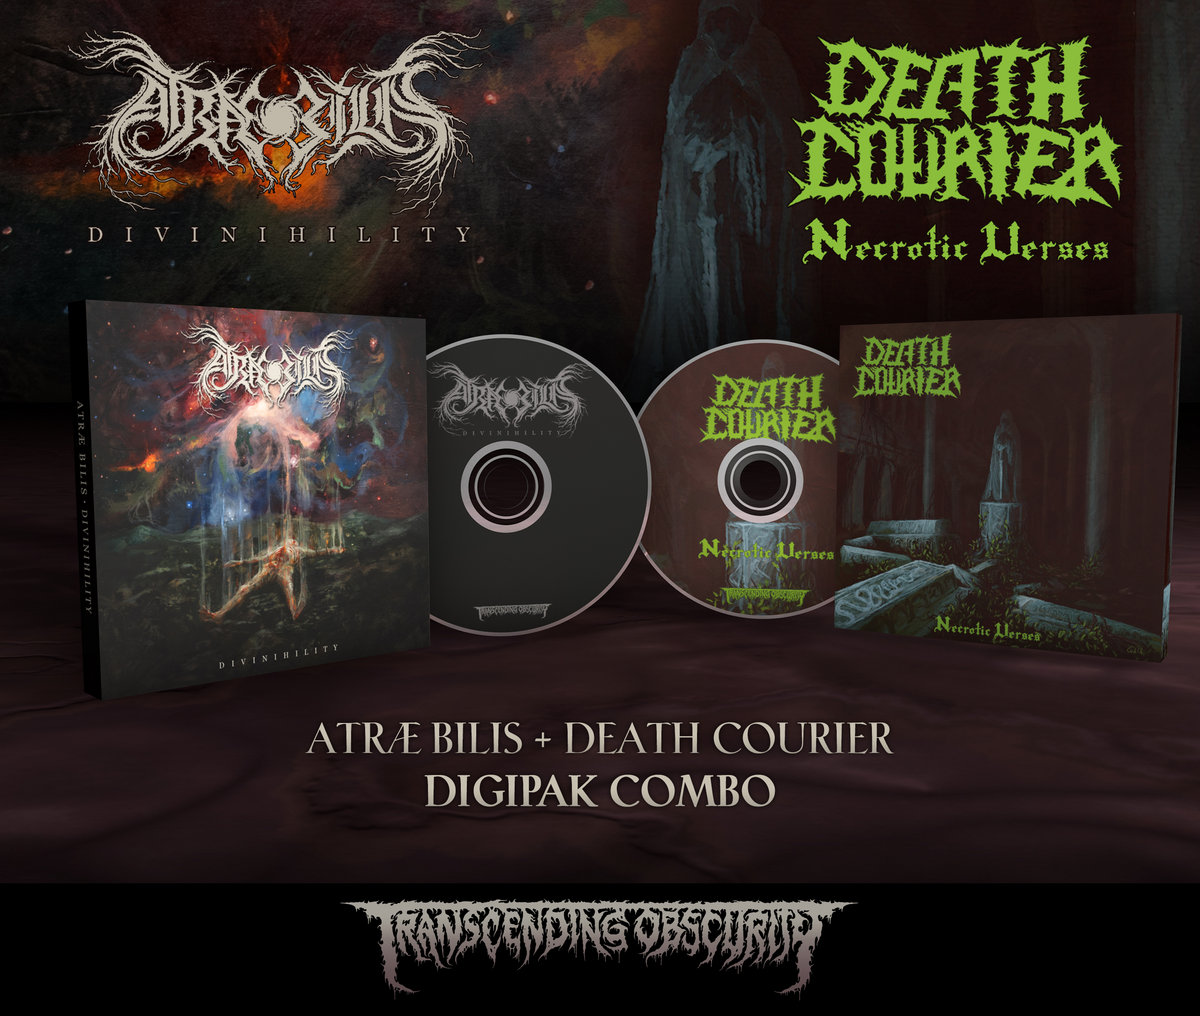 ATRÆ BILIS + DEATH COURIER CD Combo